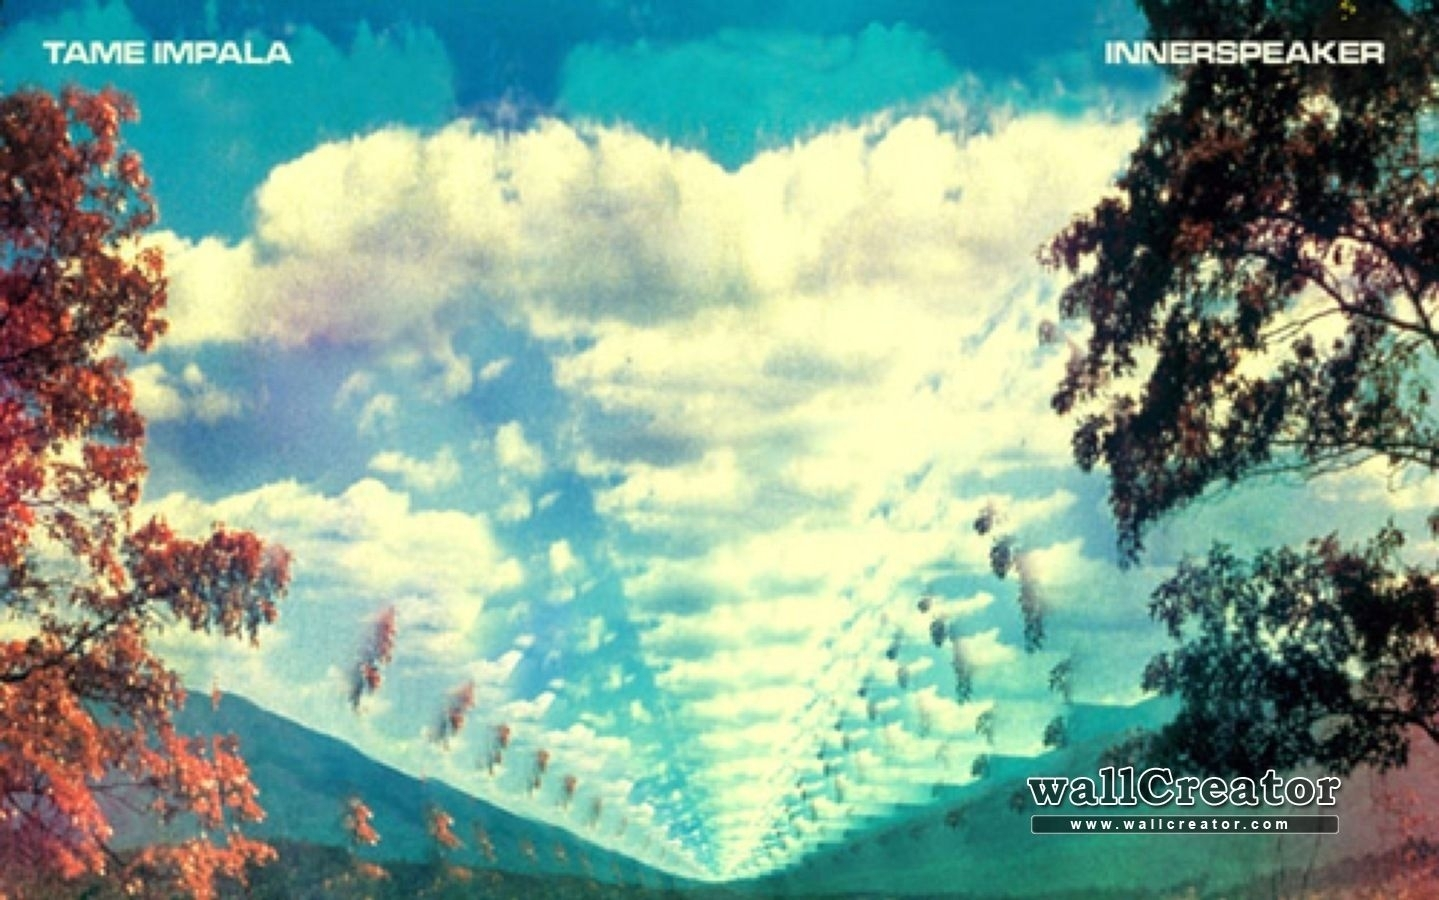 tame impala innerspeaker - 1440 / 900 wallpaper | android